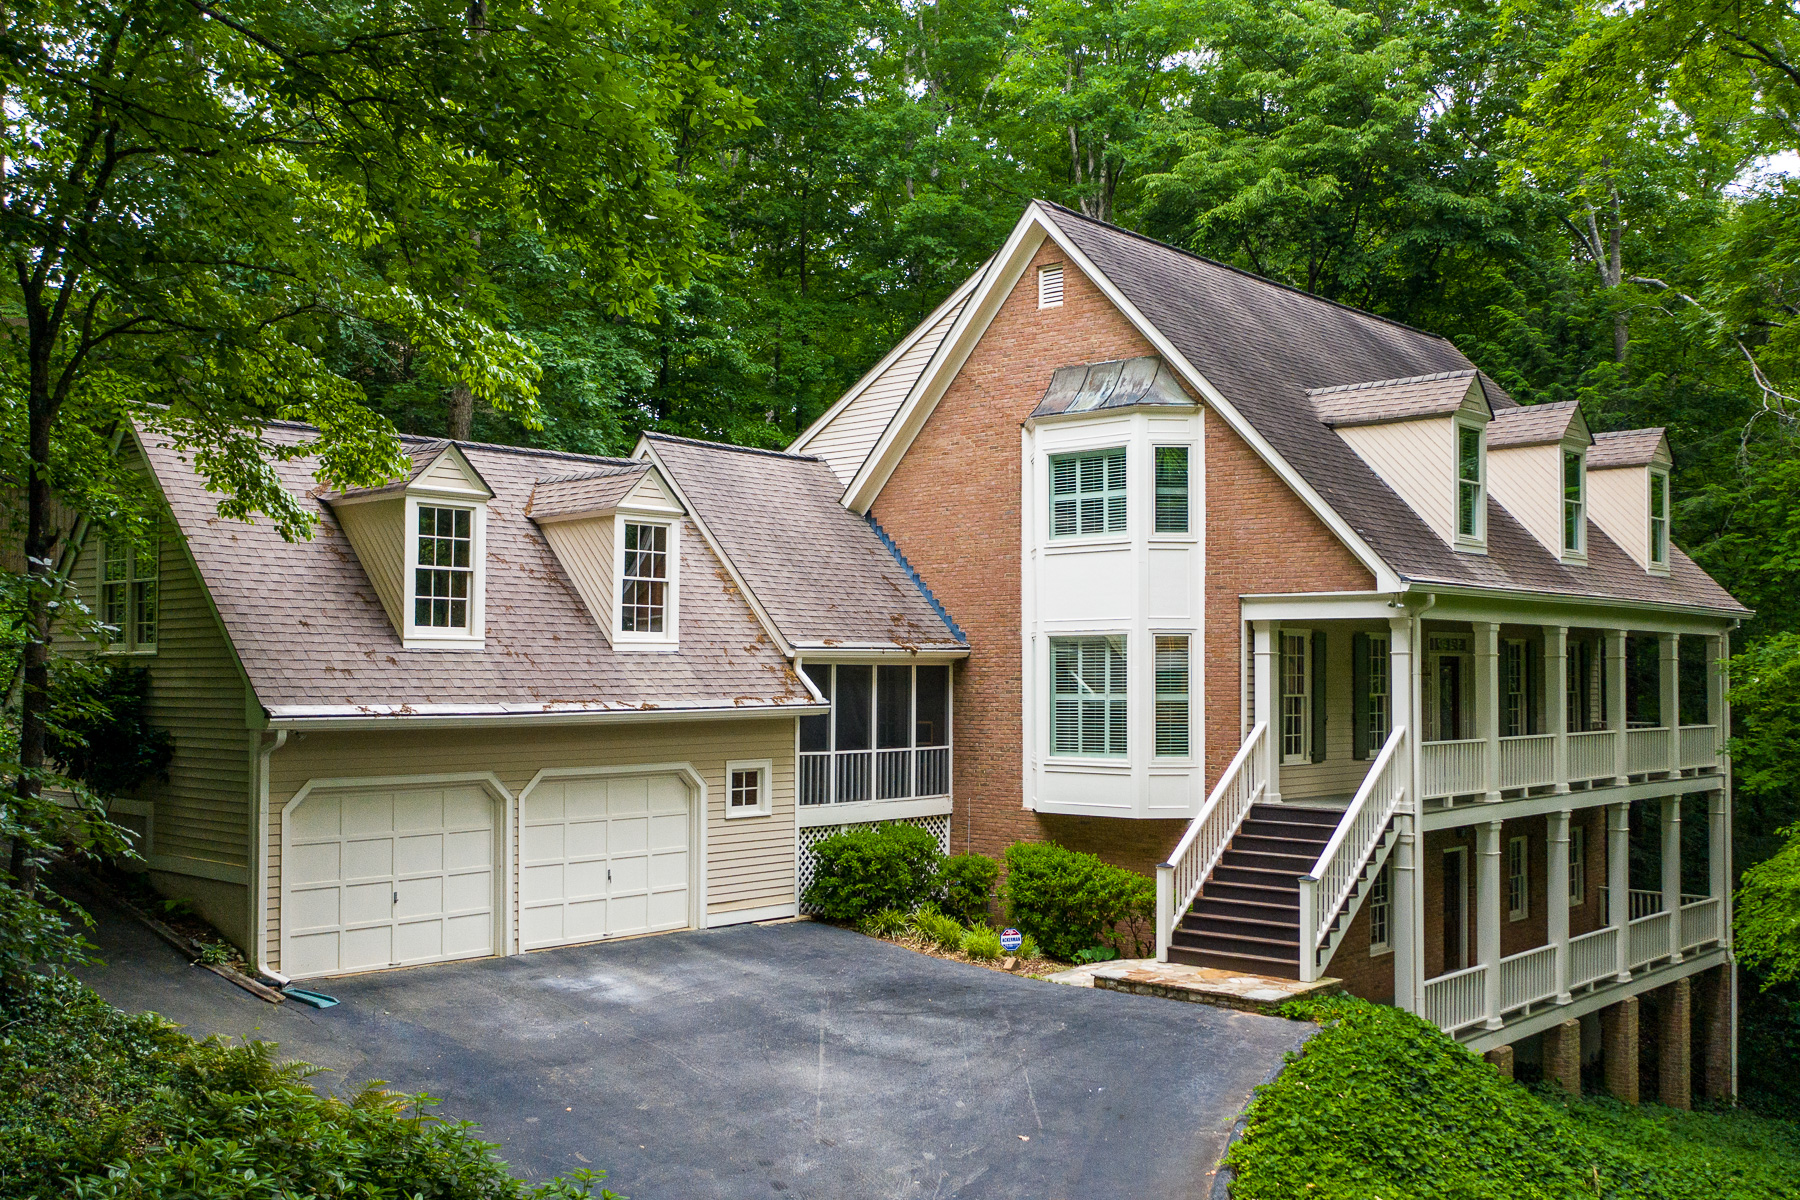 7920 Saddle Ridge Dr, Sandy Springs, GA 30350-22.jpg